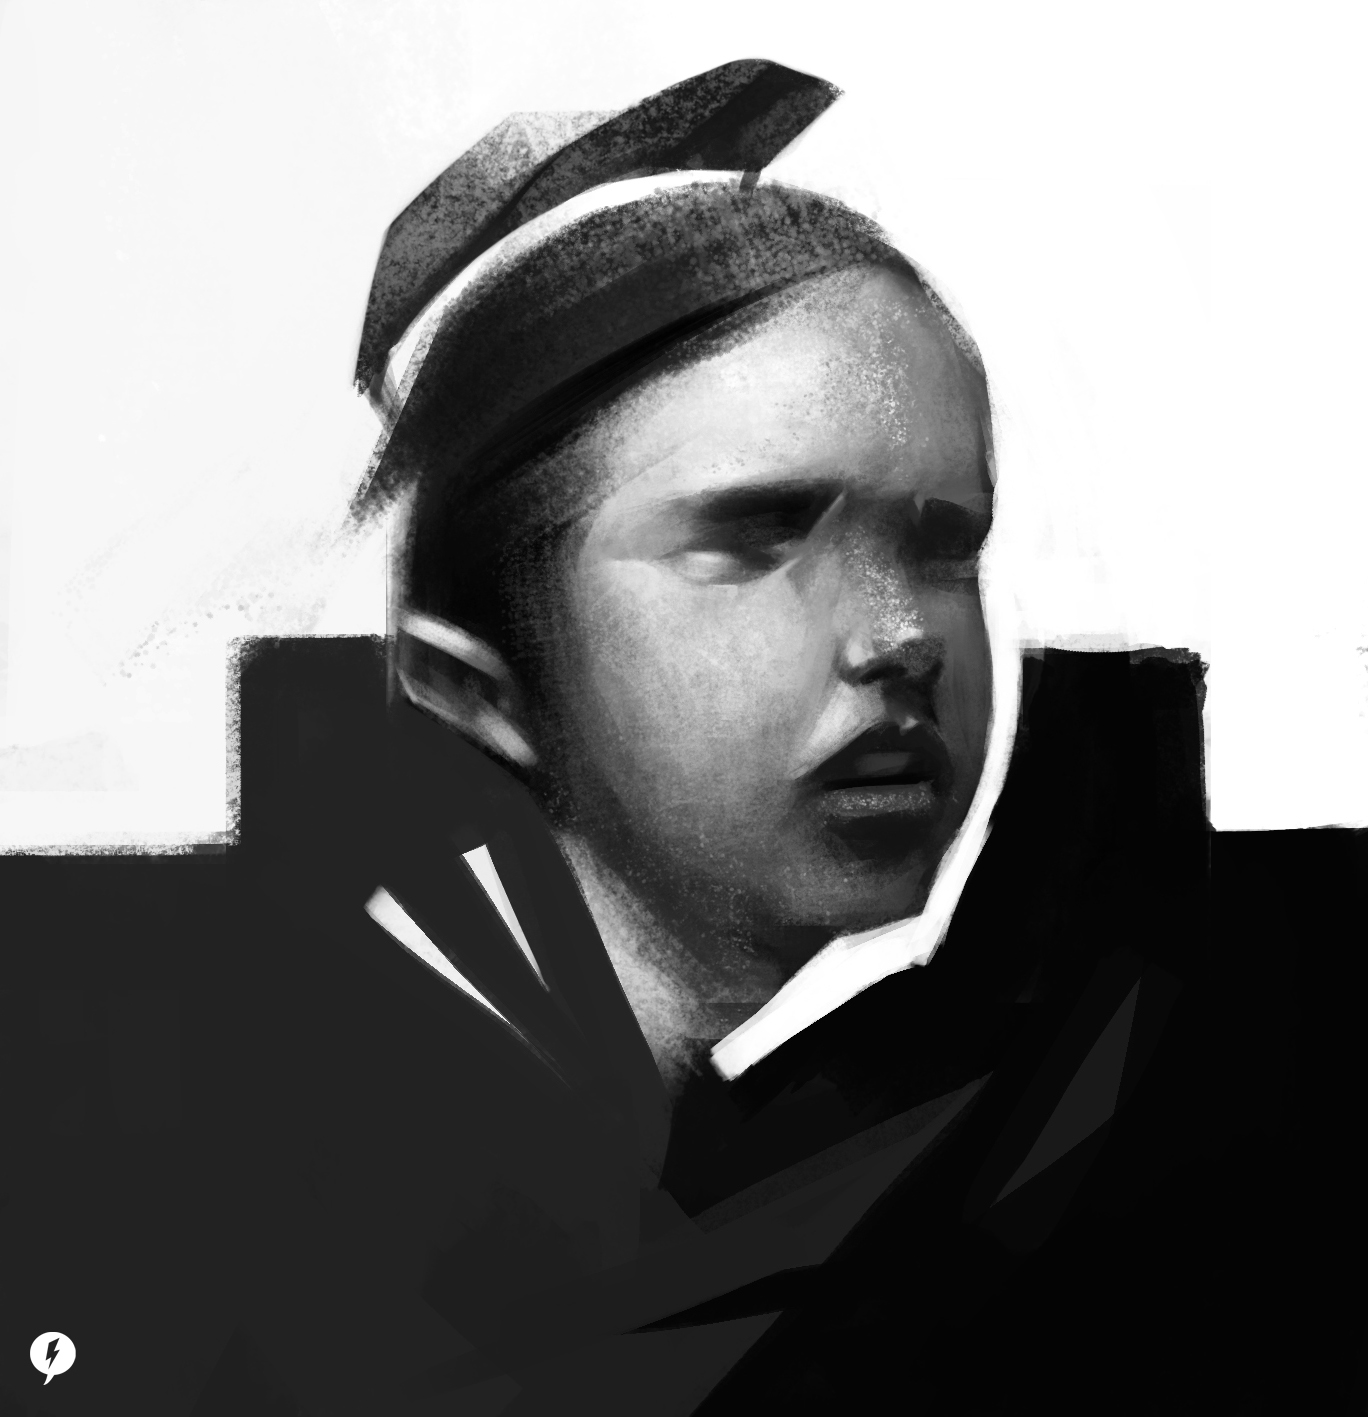 DarioNarvaez_Sketch_Feb3_2015.jpg